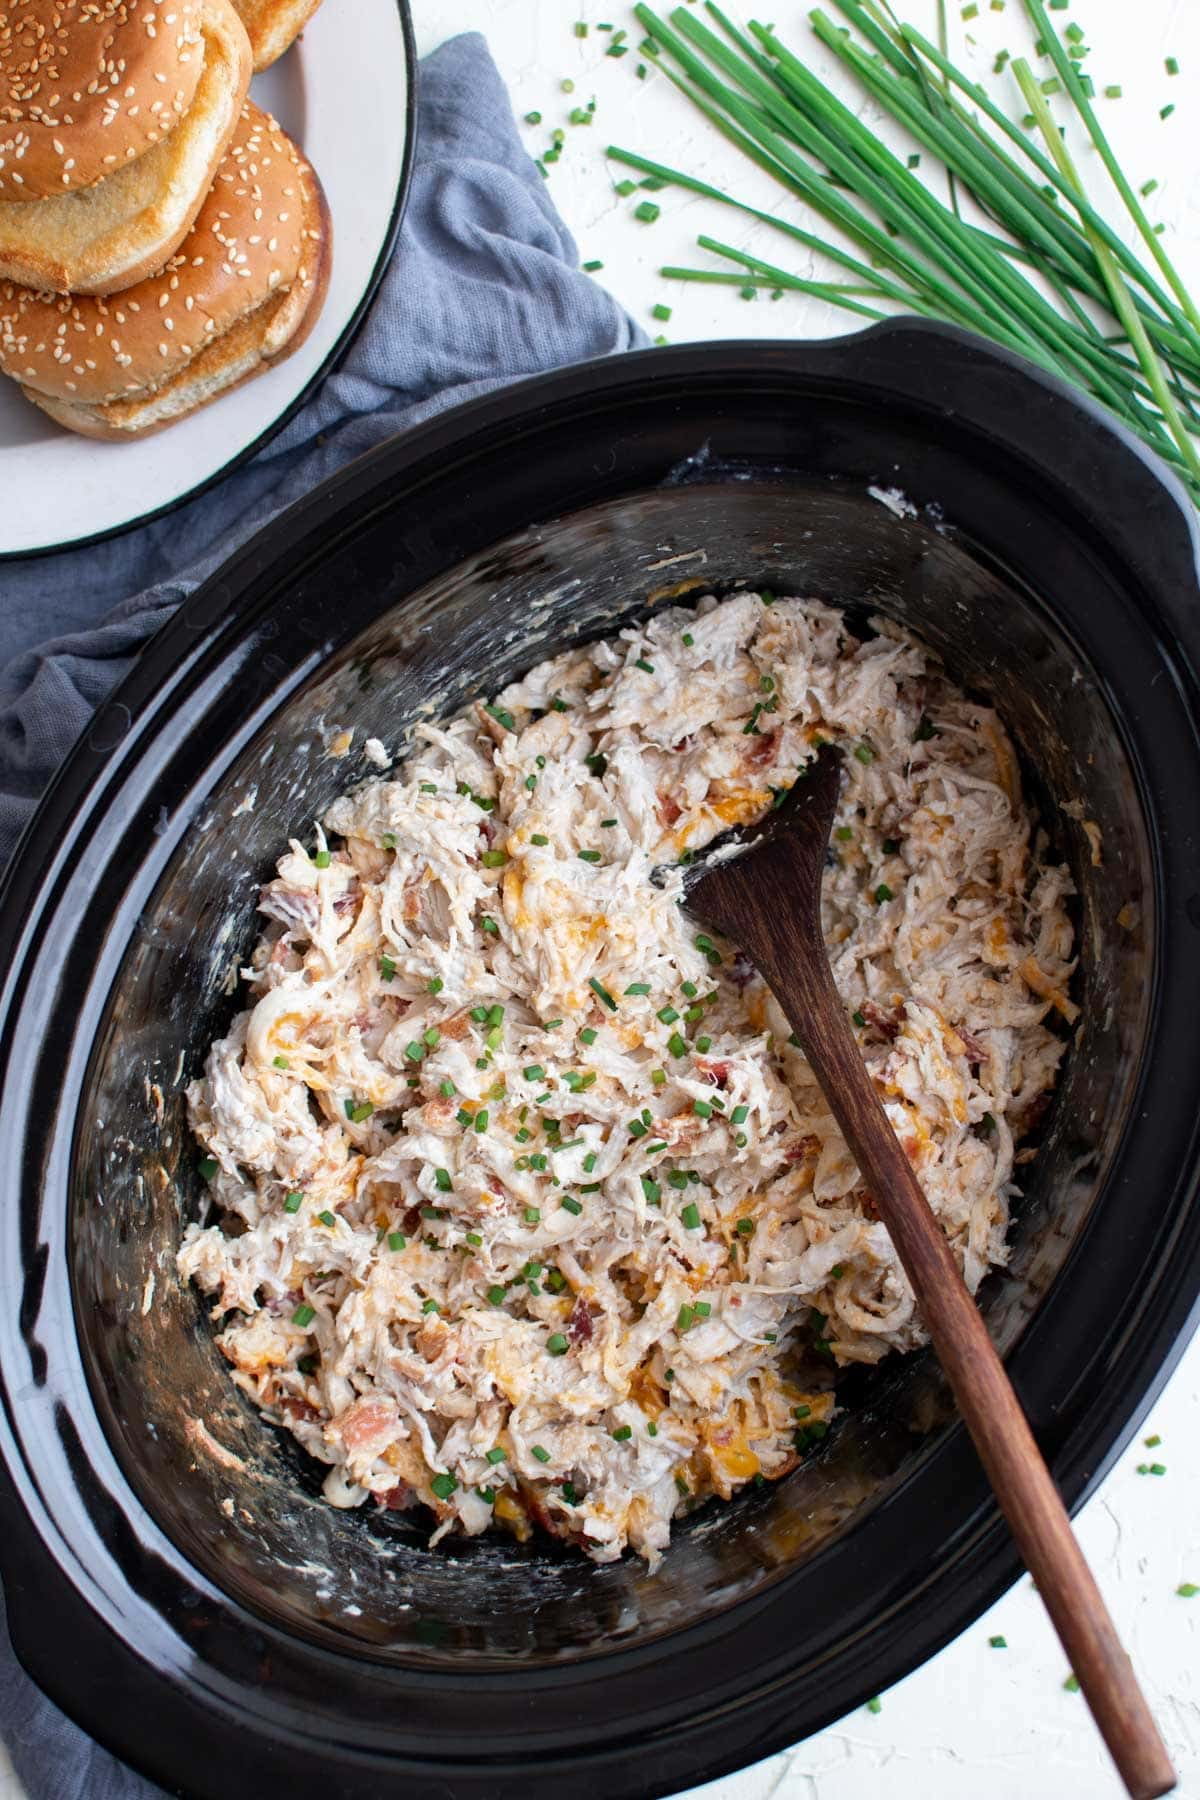 slow cooker pot with creamy shredded chicken, wooden spoon, stack of sesame seed buns, chives